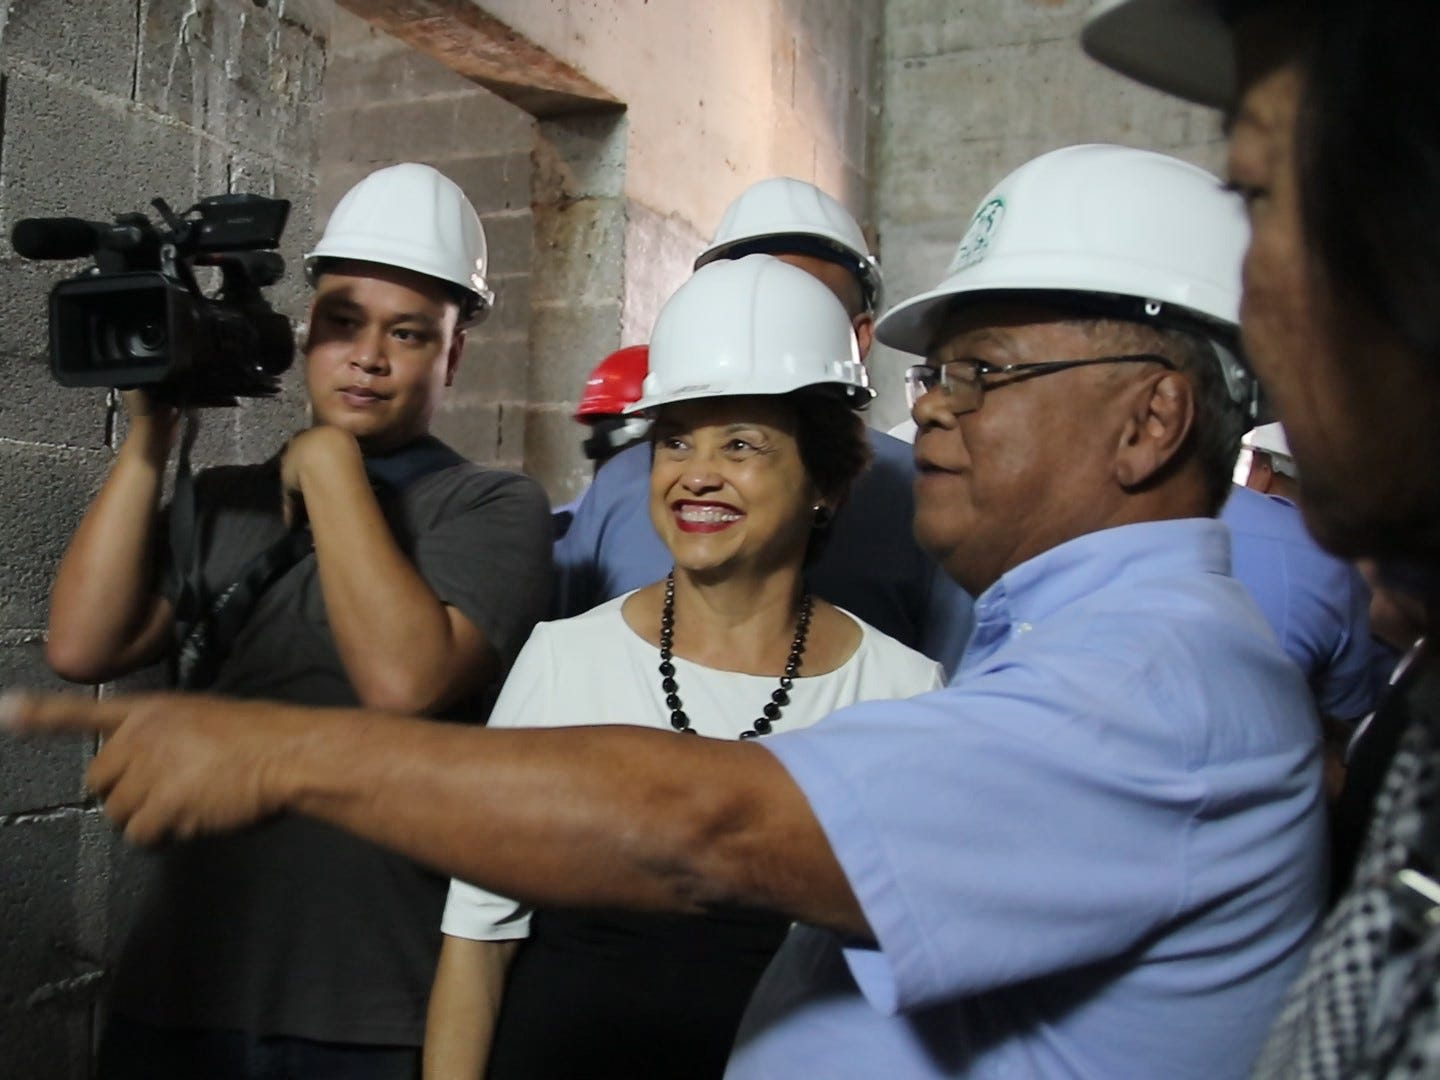 Albert Santos, GHURA architectural and engineering manager, right, guided Gov. Lou Leon Guerrero on a tour of the new central police precinct in Sinajana on Wednesday Feb. 6, 2019. Santos projected the precinct to be complete by Late March this year.